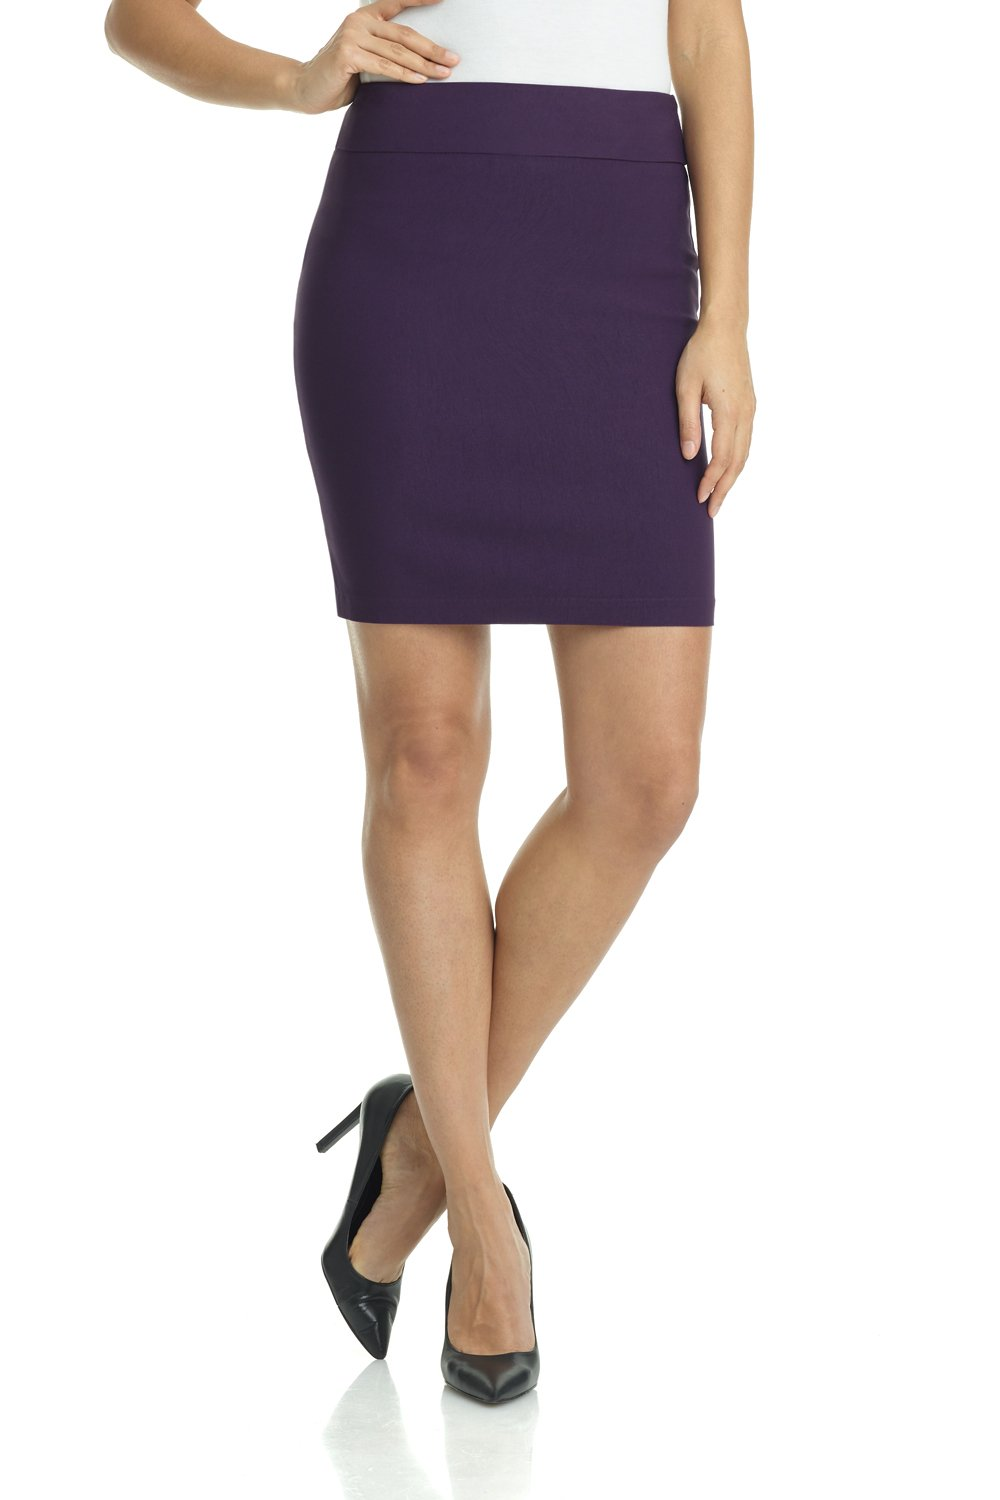 Rekucci Women's Ease in to Comfort Stretchable Above The Knee Pencil Skirt 19'' (X-Small,Deep Plum)